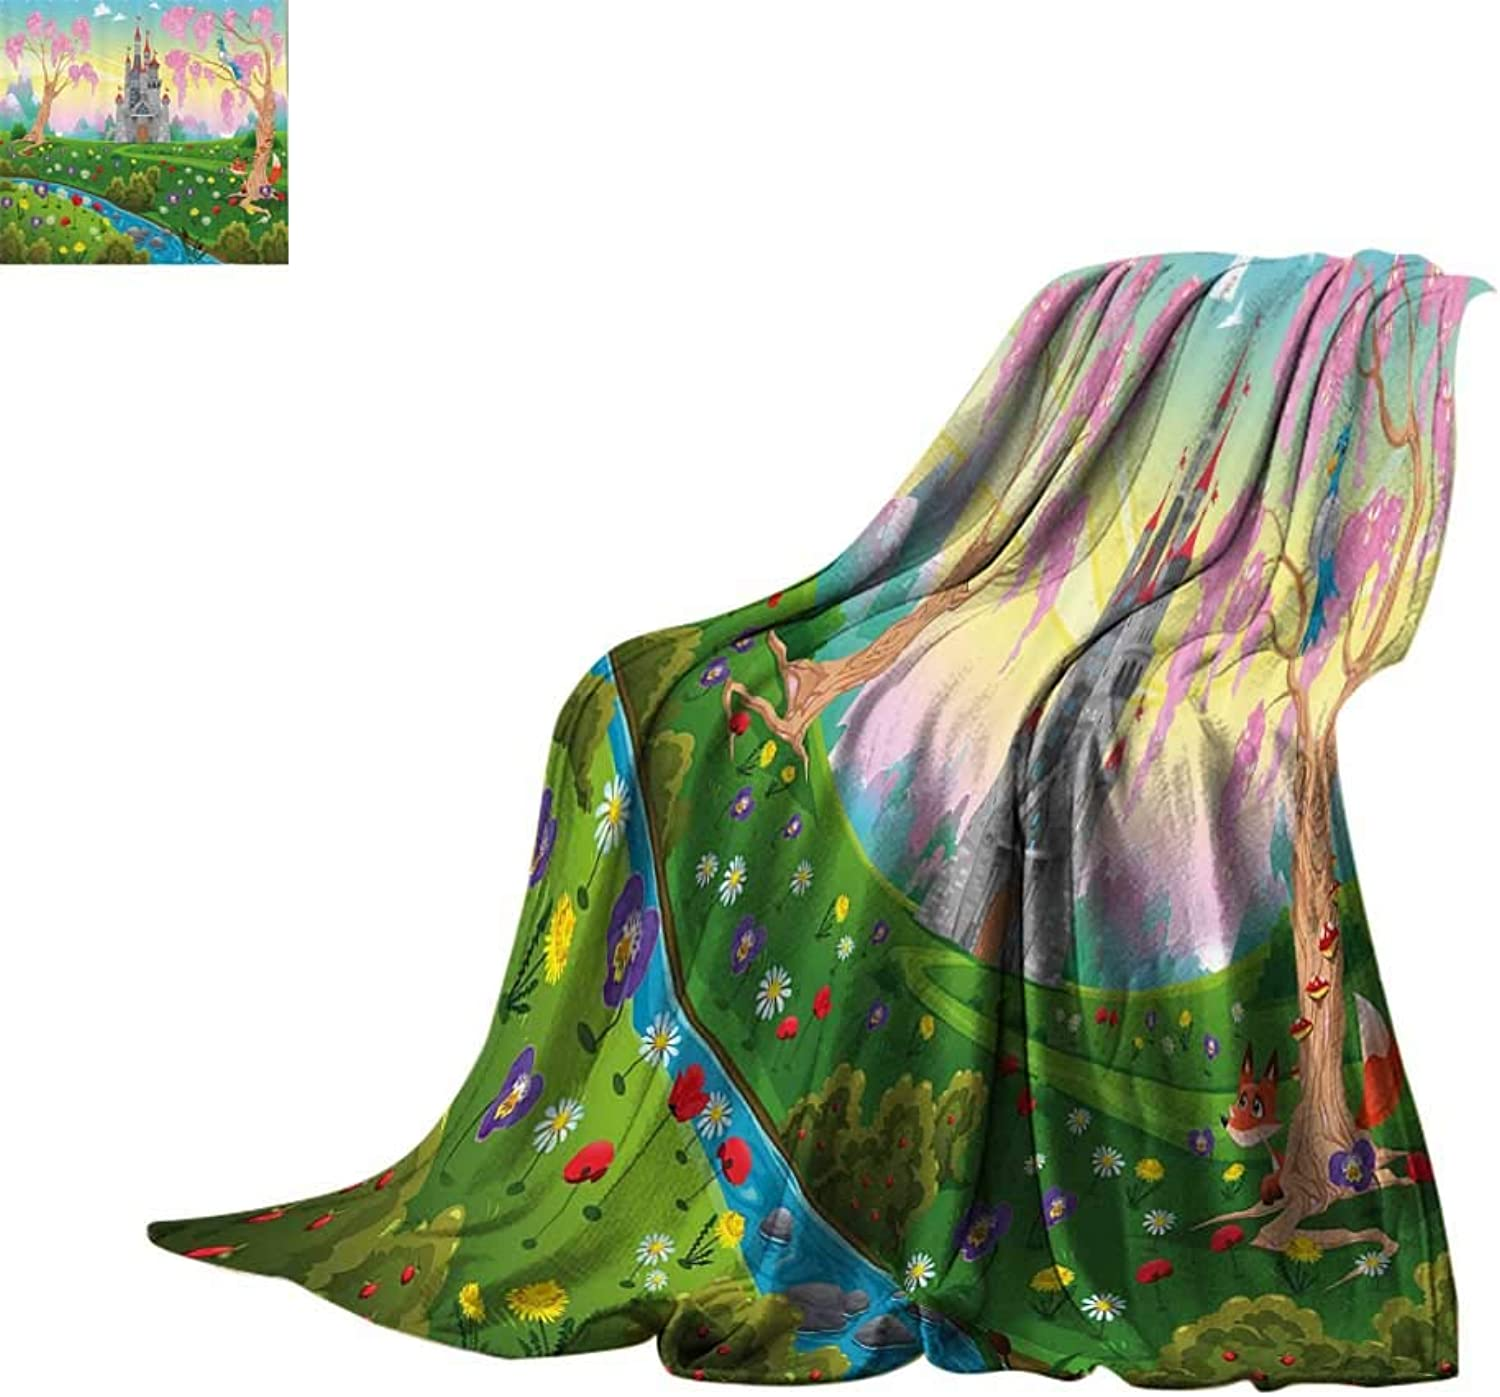 Cozy Flannel Blanket Cartoon Decor,Fairy Tale Castle Scenery in Floral Garden Princess Kids Girls Fantasy Picture,Multi Lightweight E x tra Big Bed or Couch 60 x35